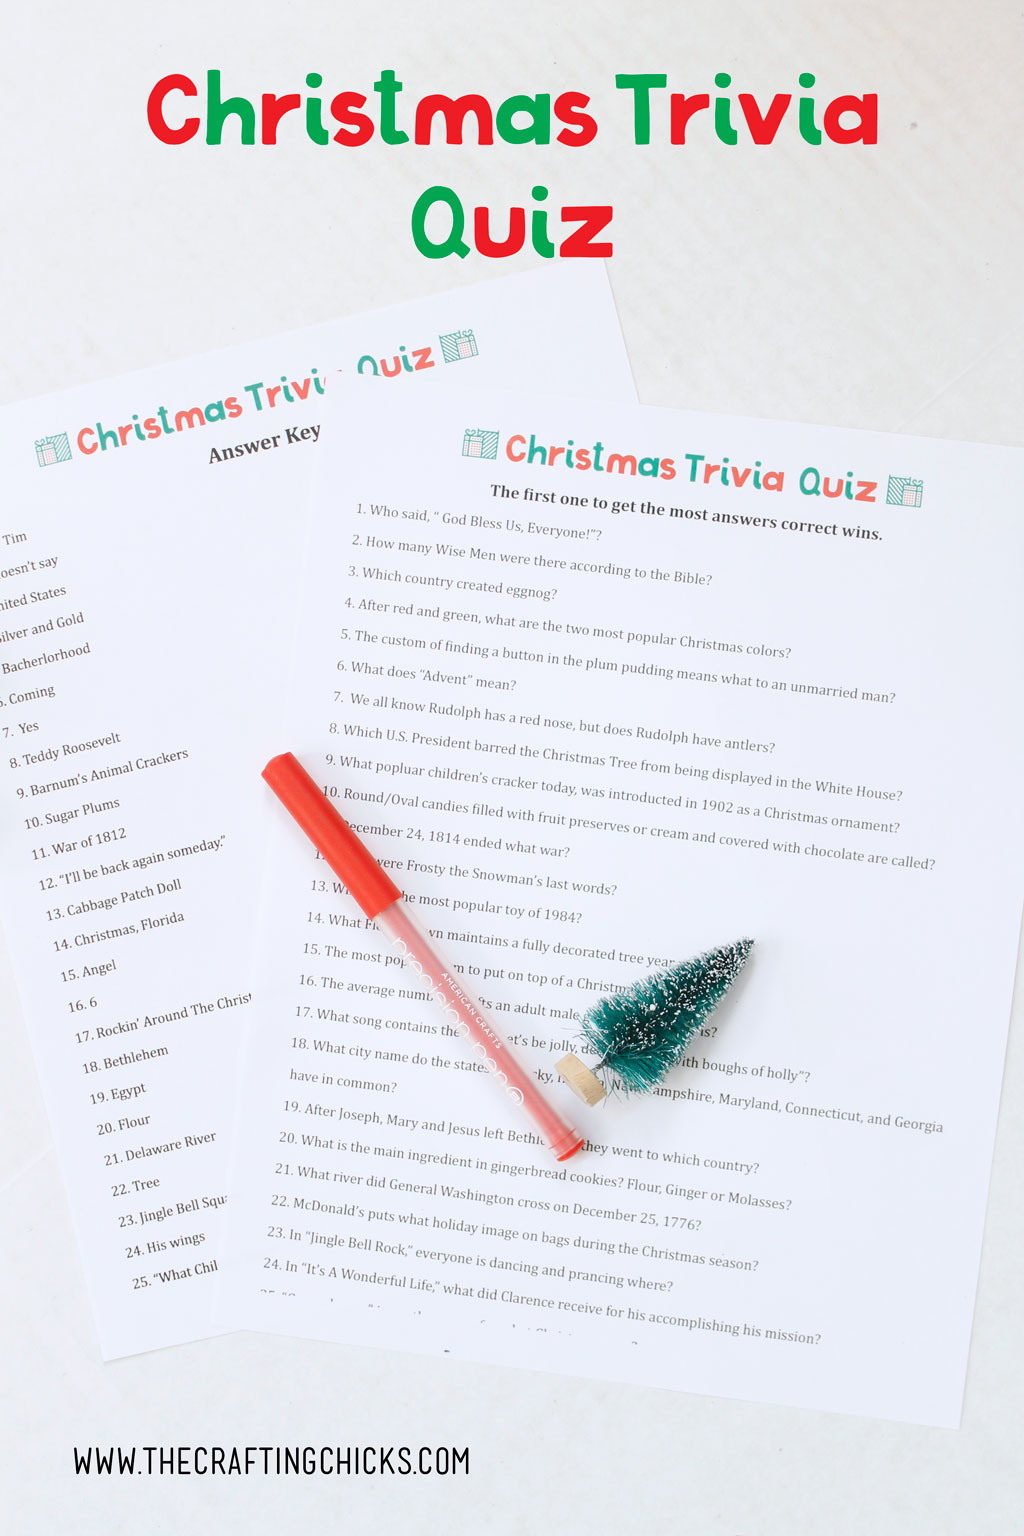 Christmas Trivia Quiz Free Printable - The Crafting Chicks - Free Printable Christmas Trivia Quiz